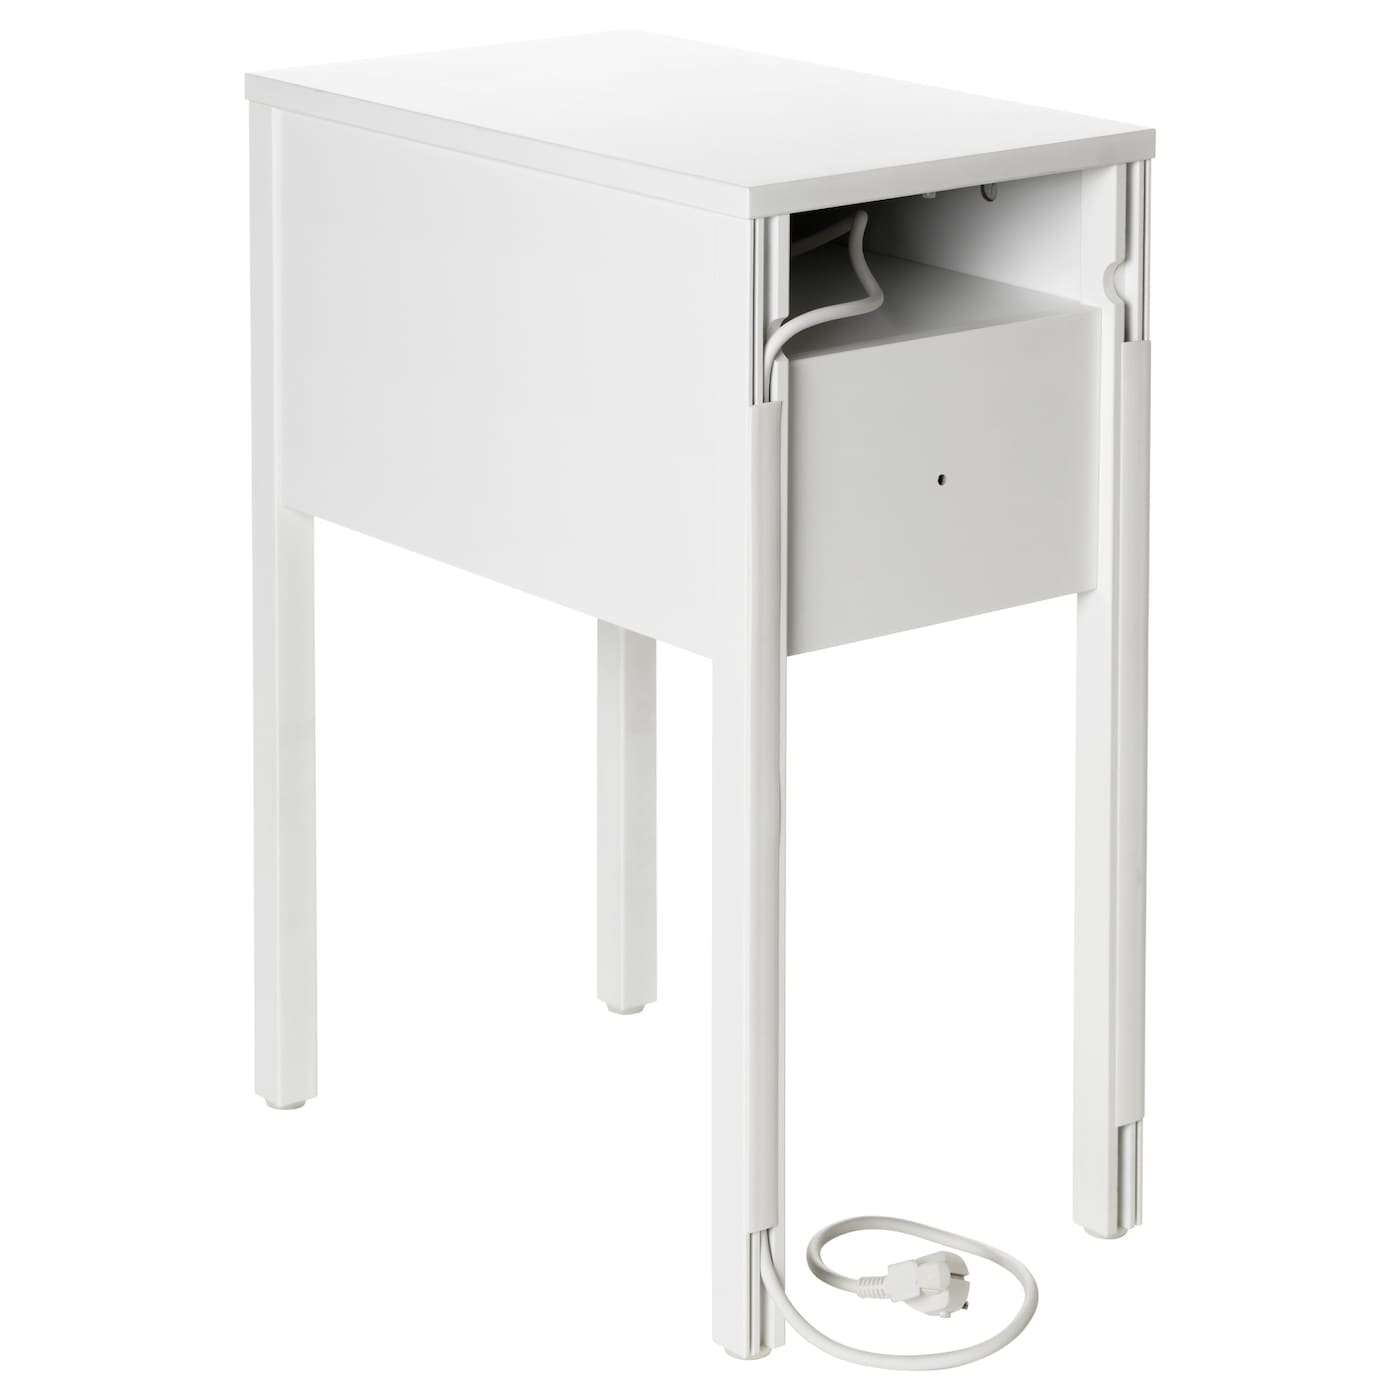 nordli bedside table white 30x50 cm ikea. Black Bedroom Furniture Sets. Home Design Ideas